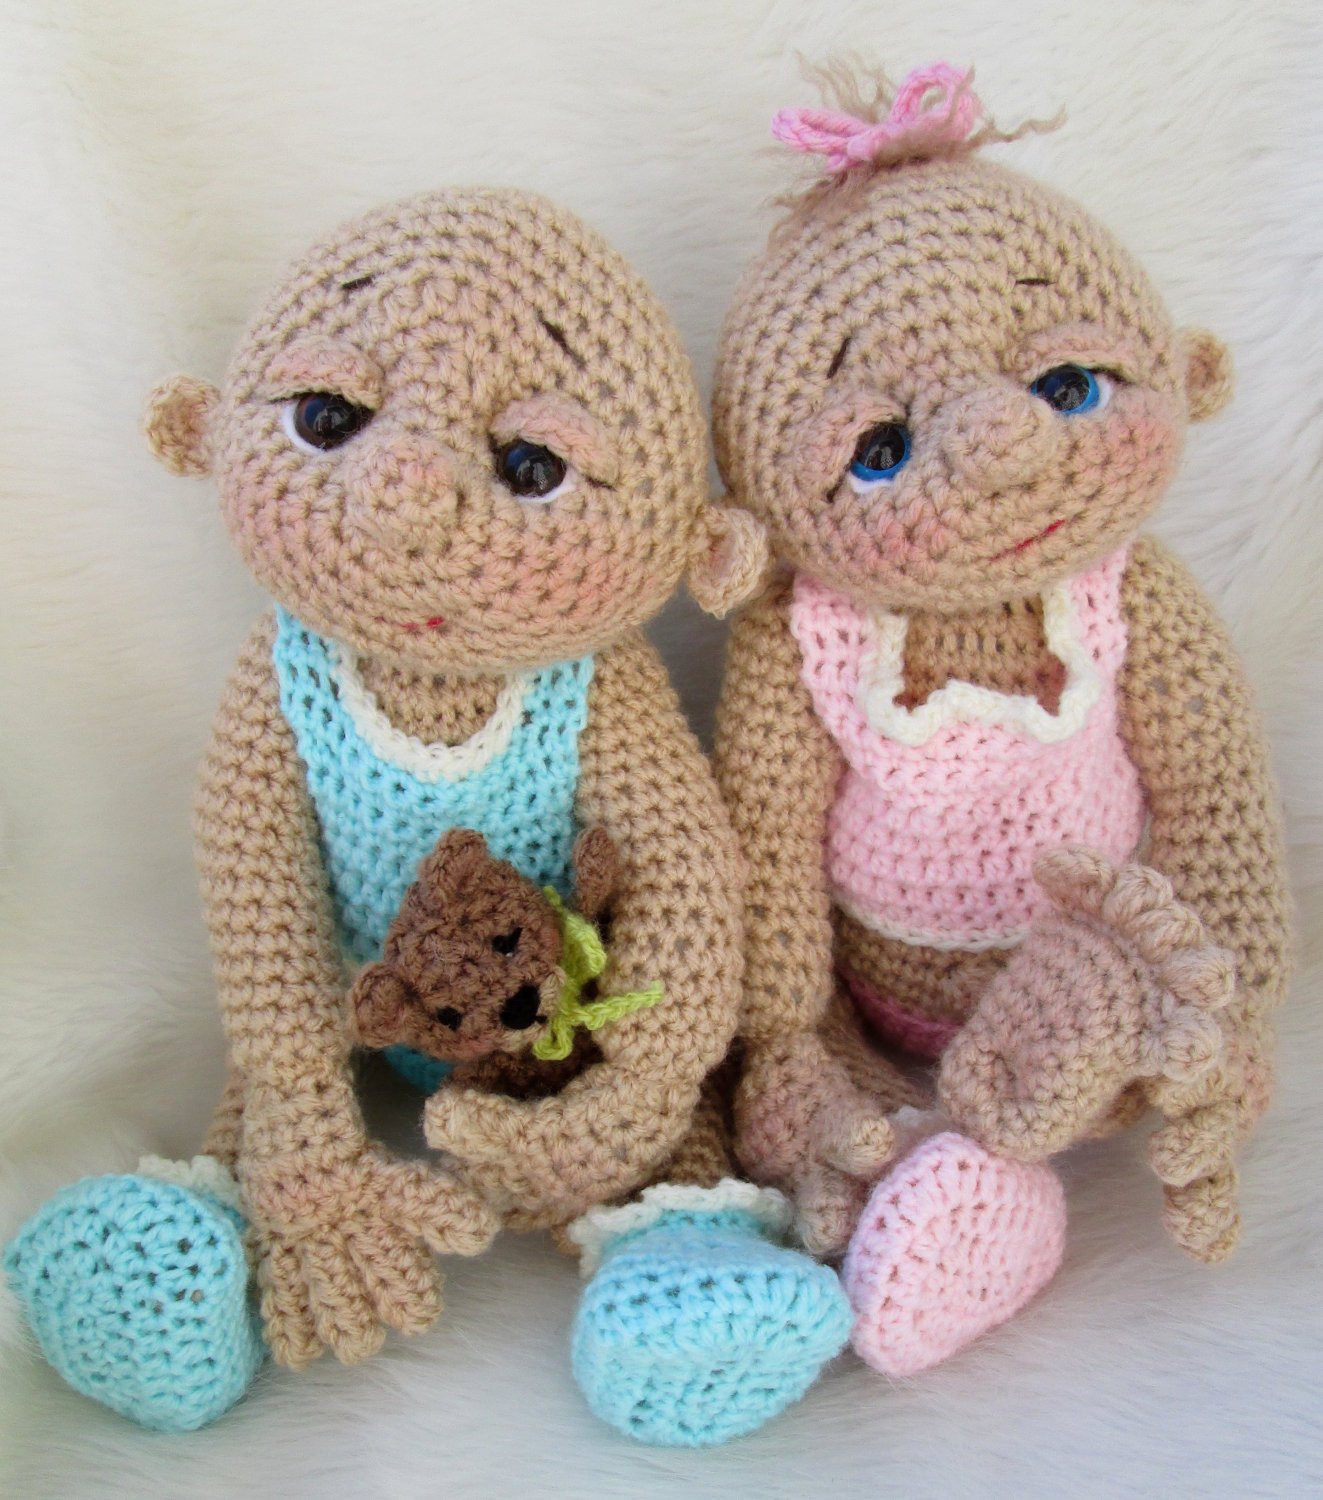 Crochet Doll Patterns Awesome so Cute Baby Doll Crochet Pattern with Teddy Bear Hat toy and Of Adorable 42 Ideas Crochet Doll Patterns